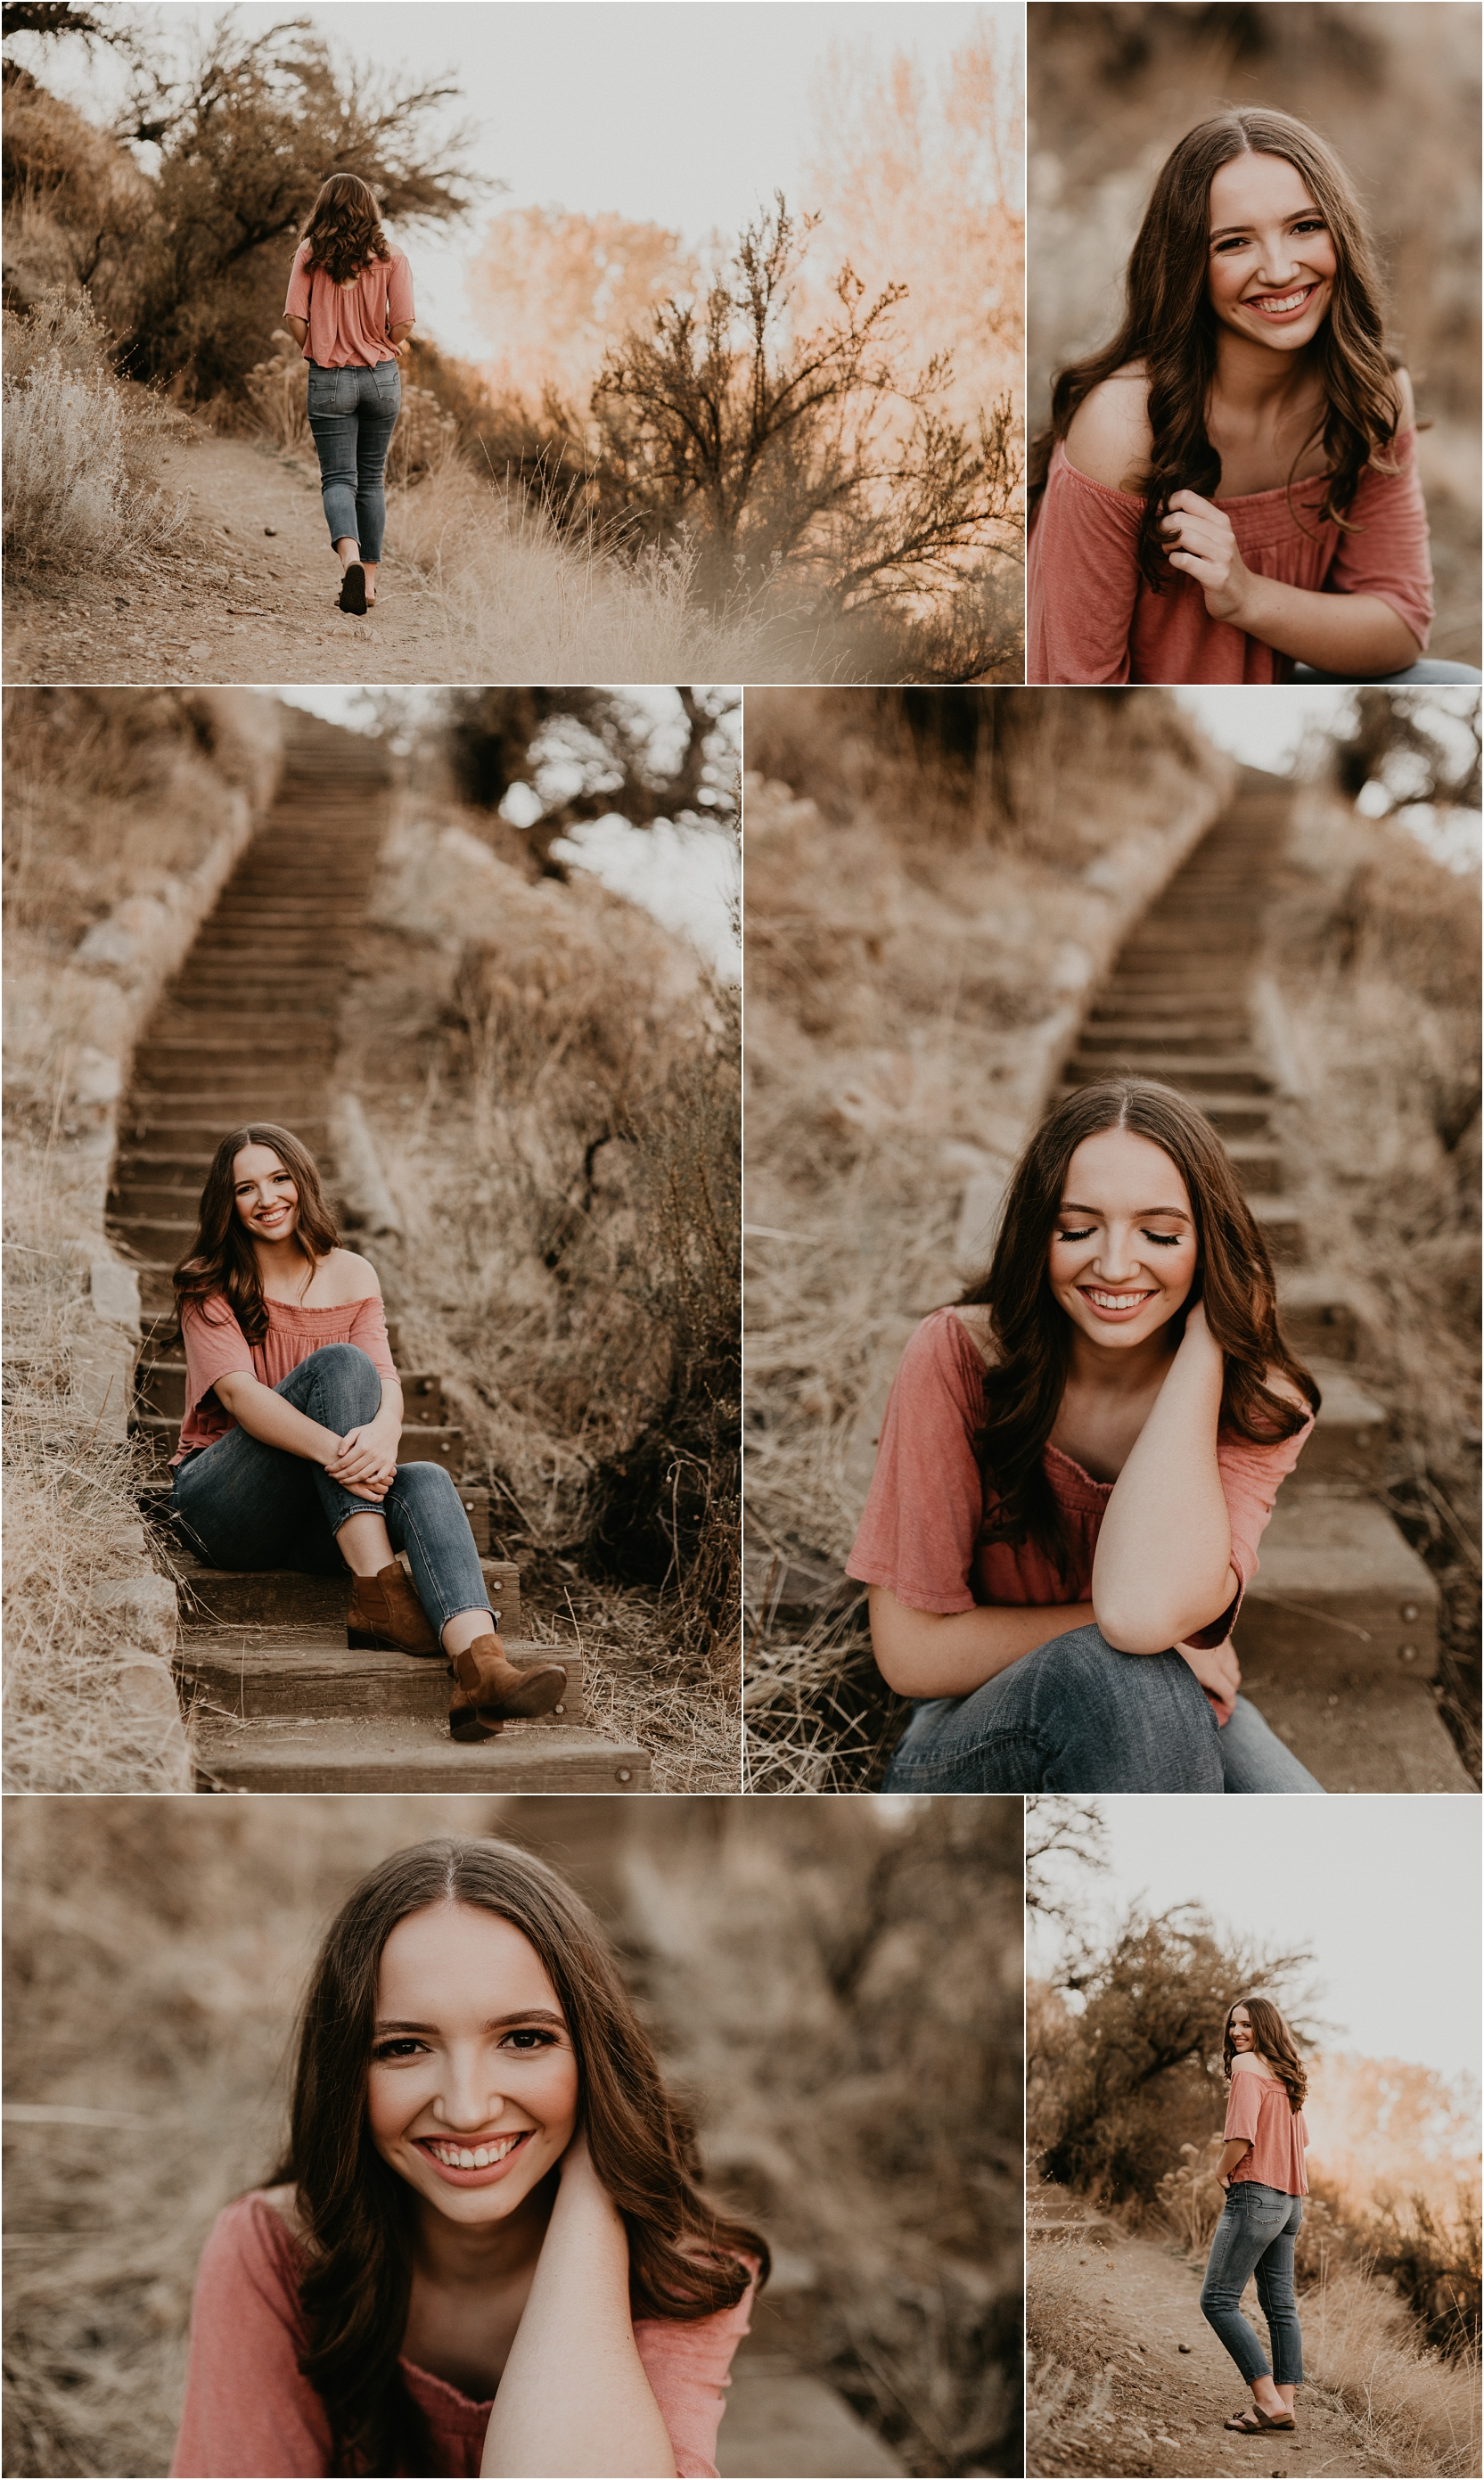 Boise Senior Photographer Makayla Madden Photography Downtown Boise Centennial High Senior Pictures Boise Foothills Senior Outfit Locations Raw Real Natural Candid Moments